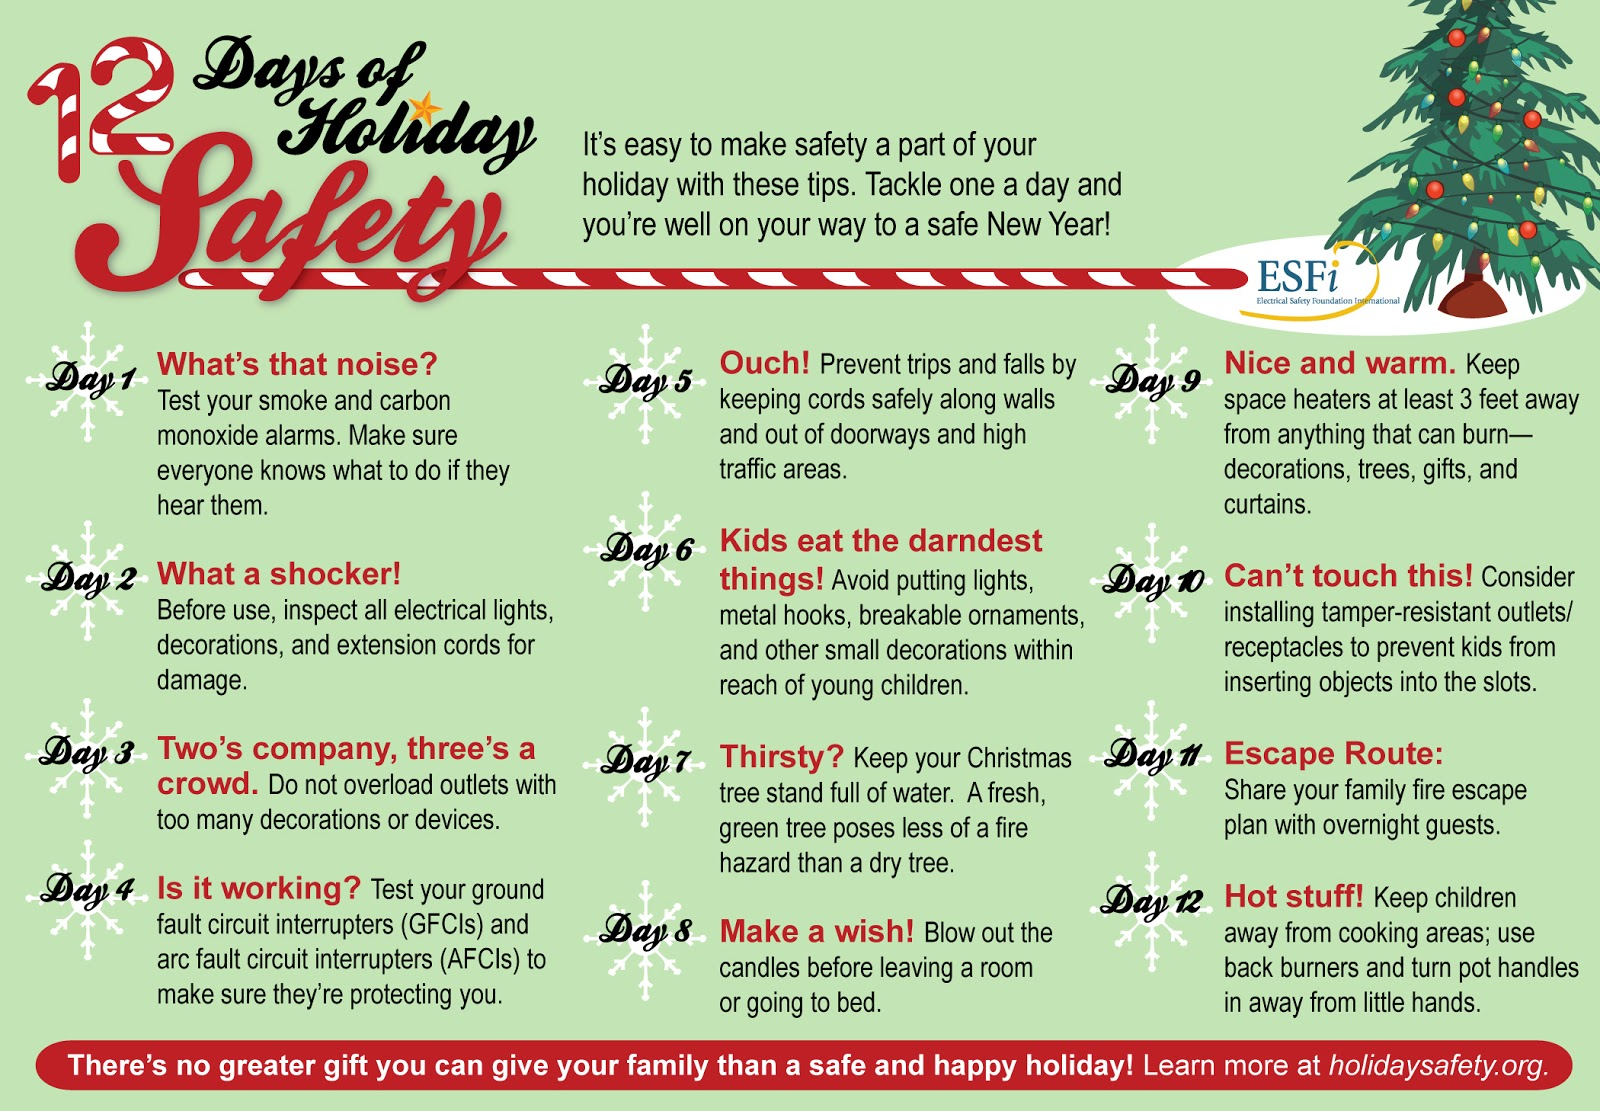 Holiday tipping suggestions